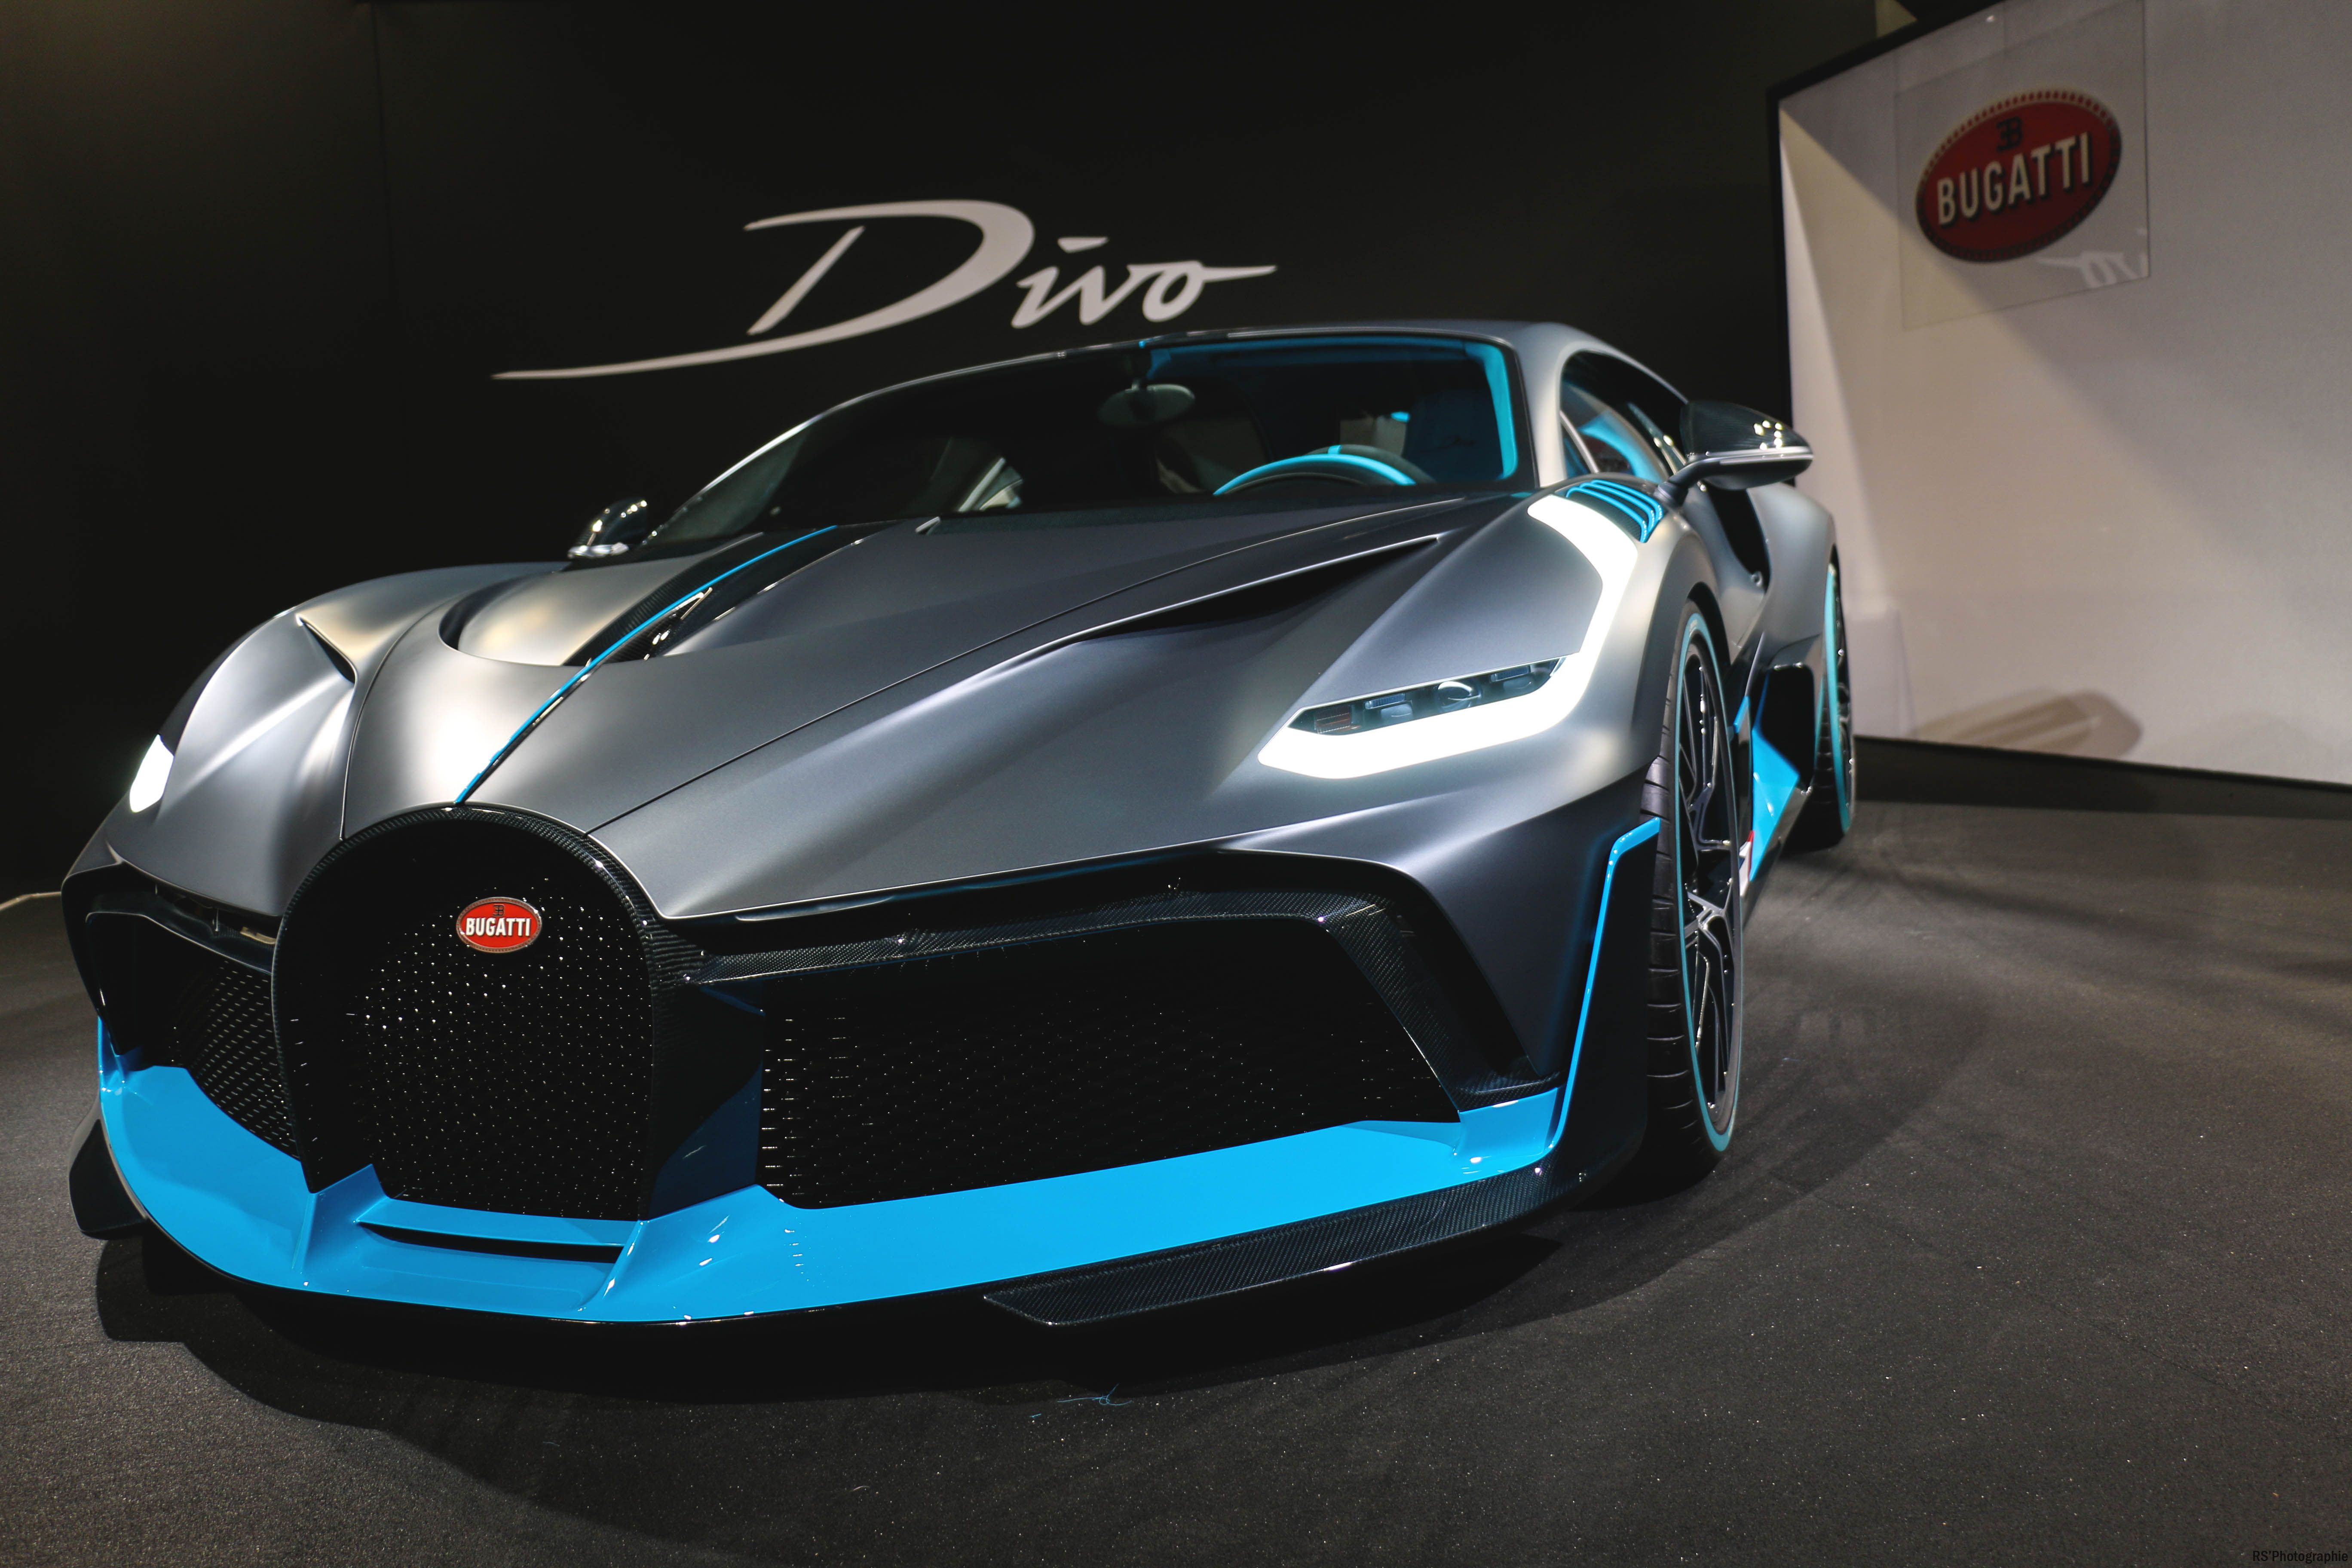 ugatti Divo - side view - Paris Motor Show - 2018 - Mondial Auto - photo by Arnaud Demasier RS Photographie